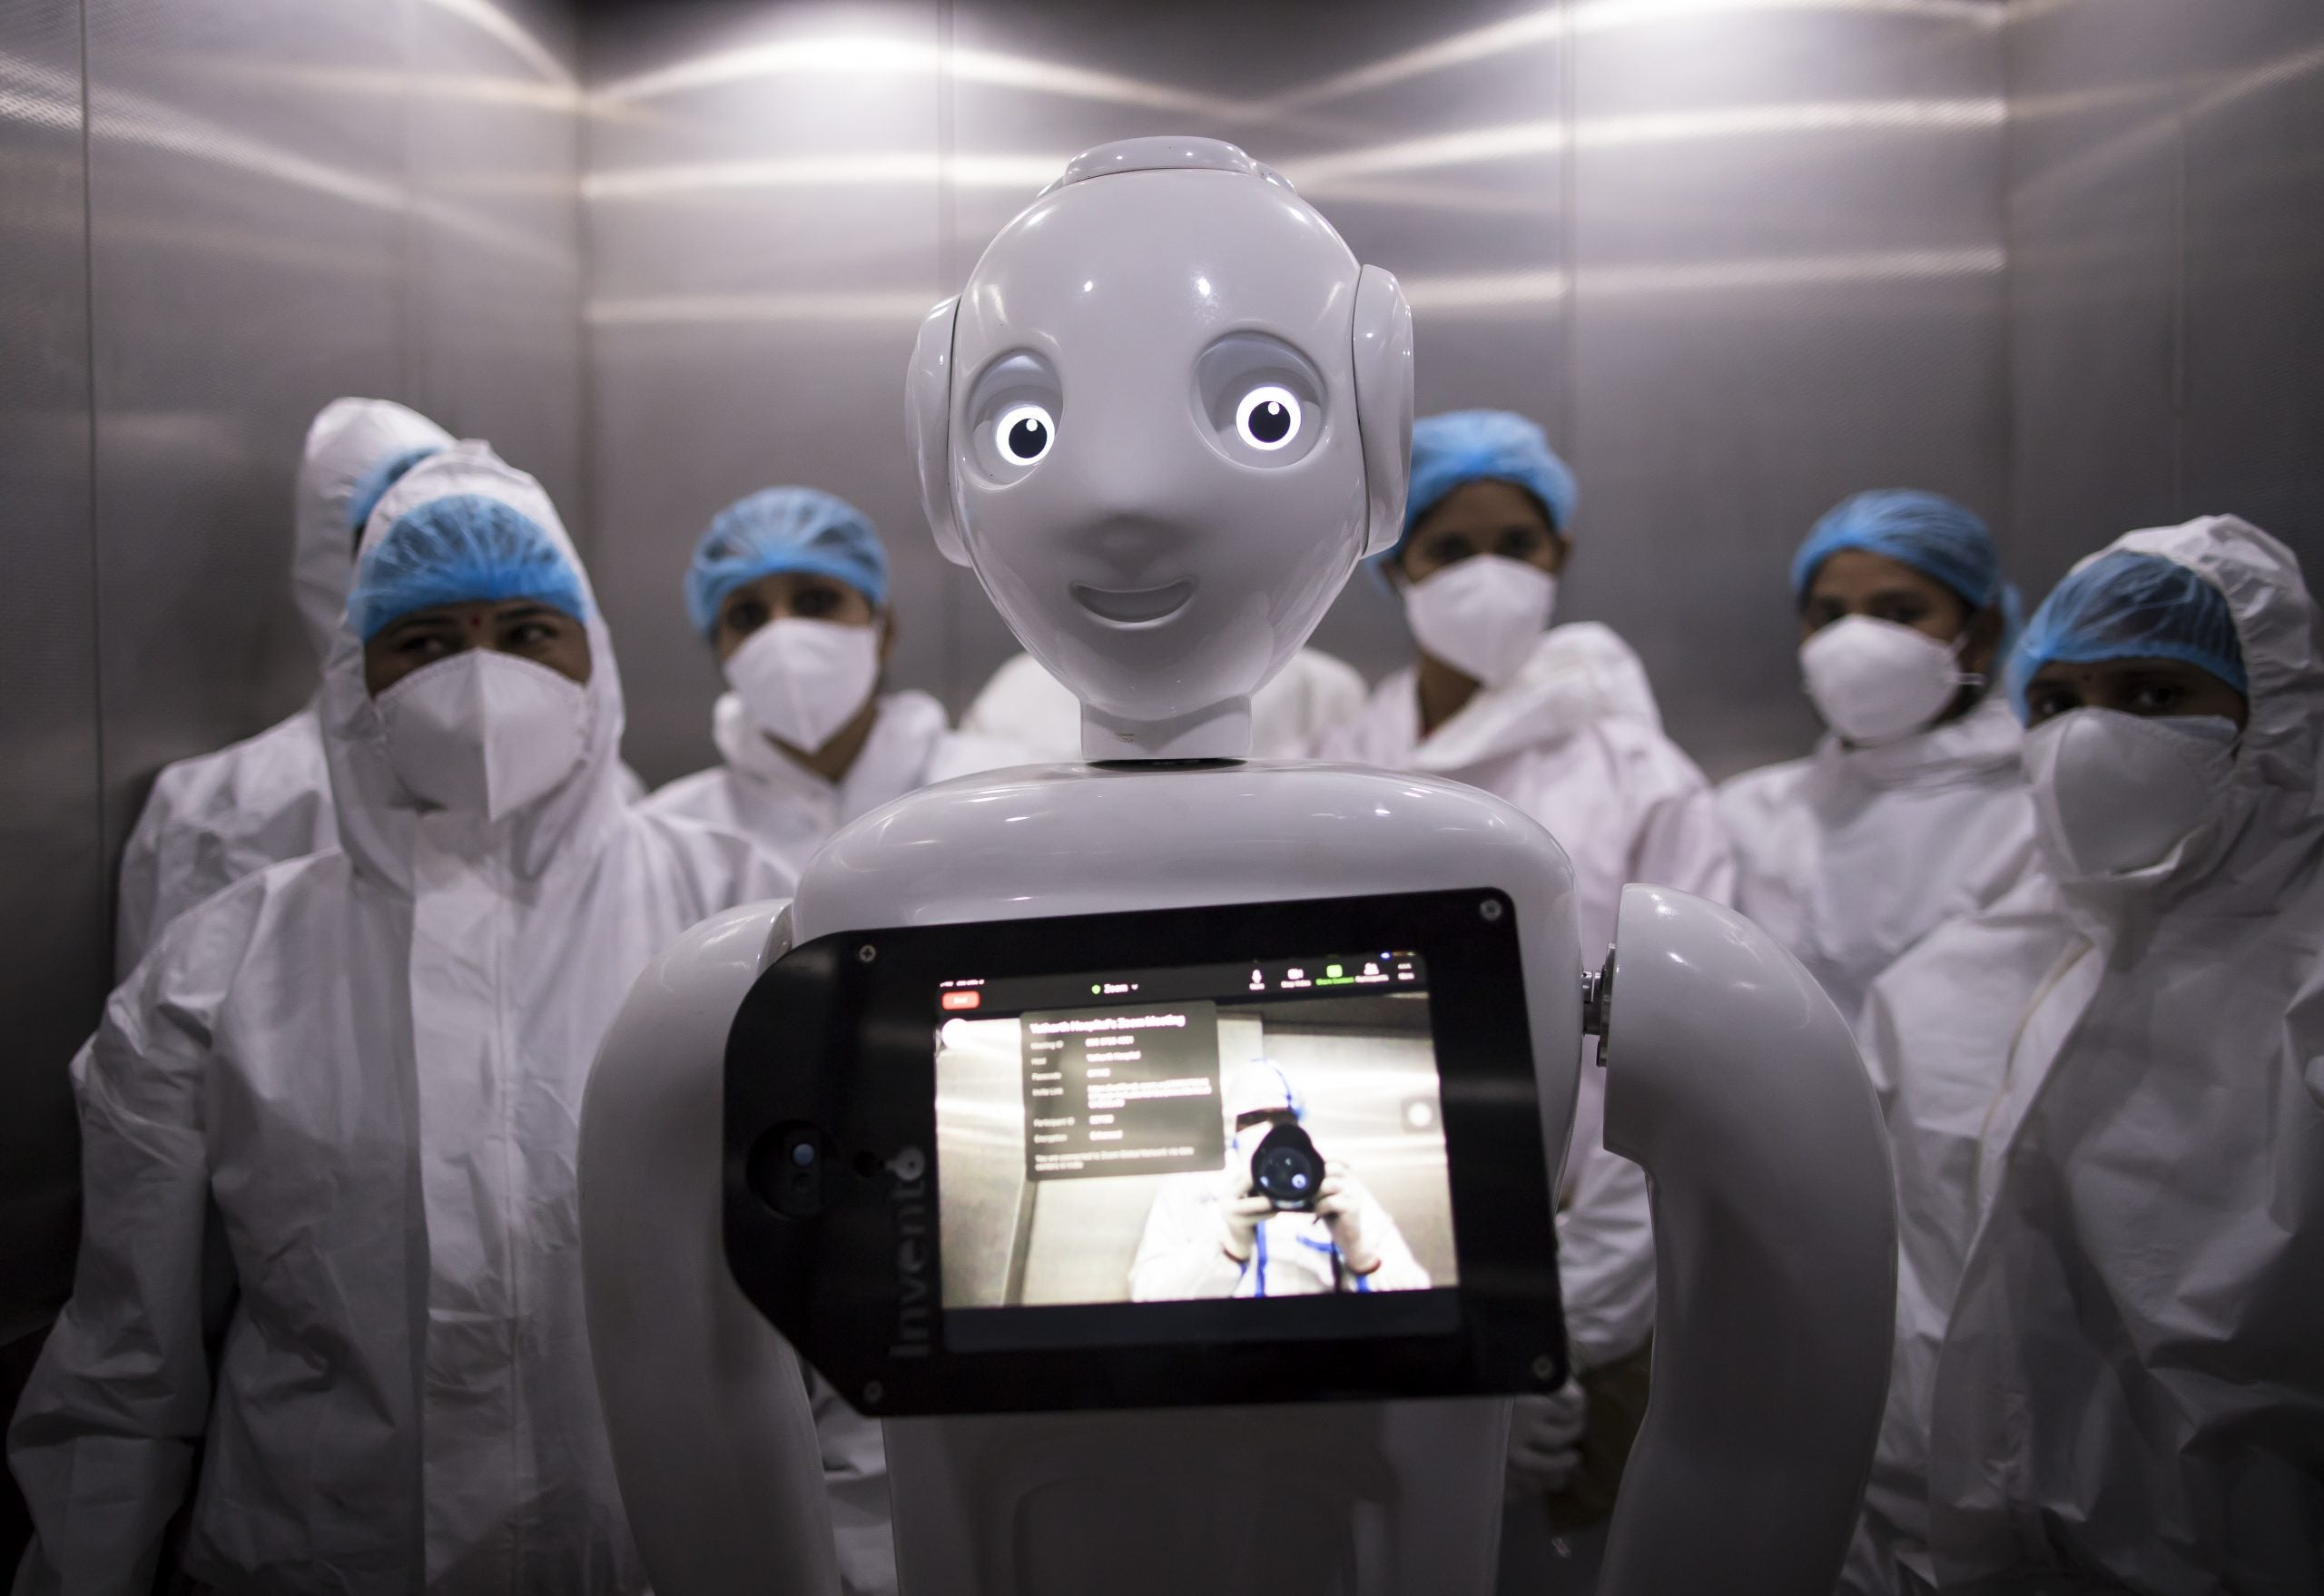 Automated assistance: how robots are changing social care